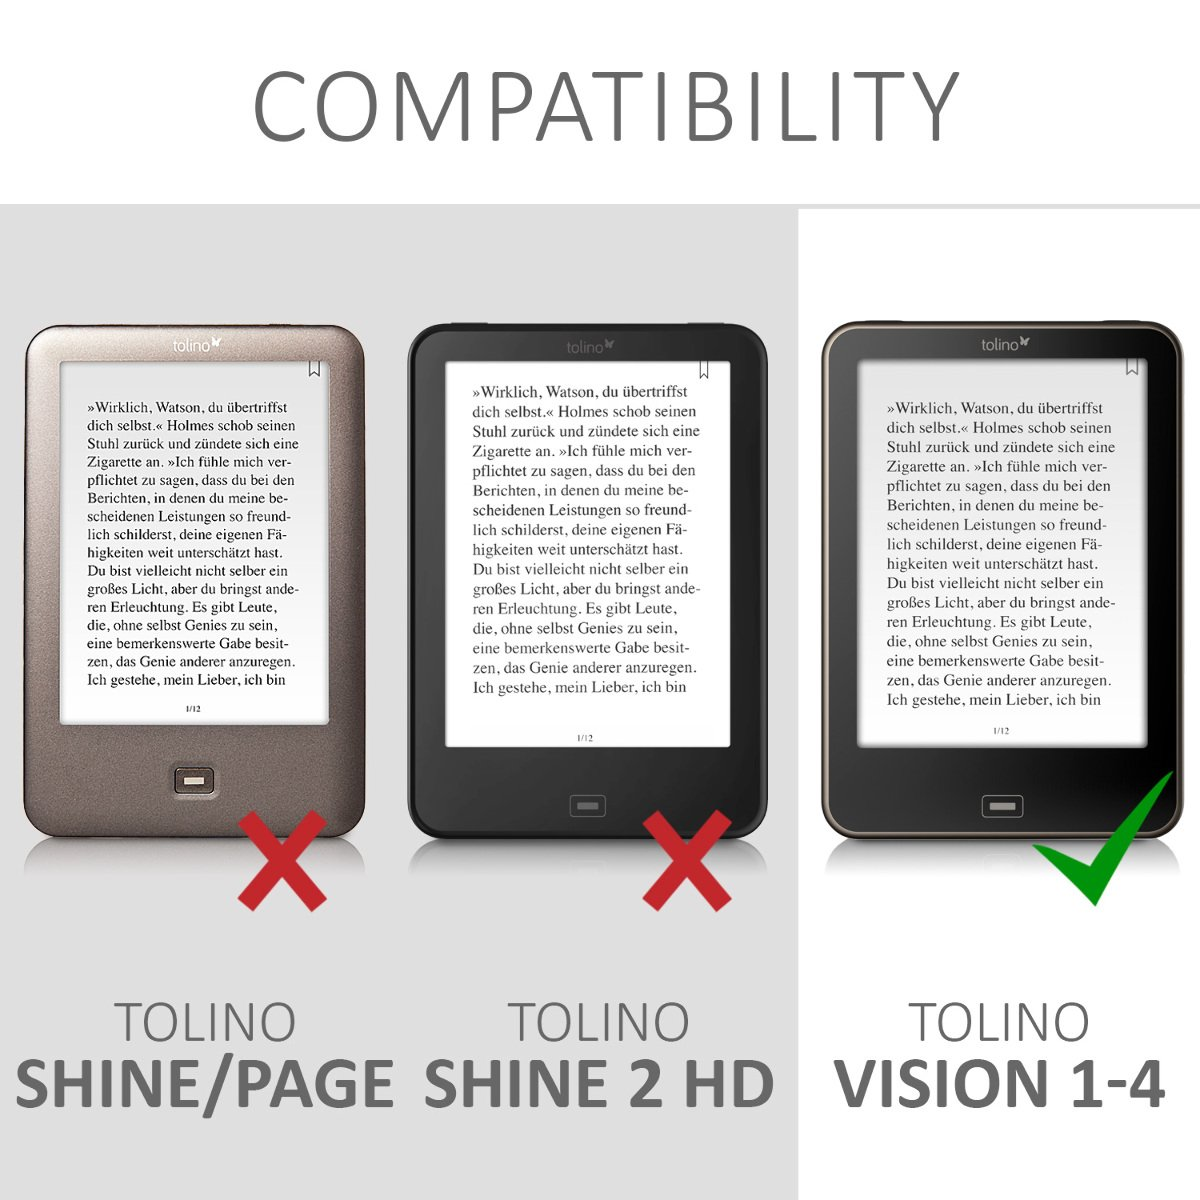 kwmobile Case for Tolino Vision 1/2 / 3/4 HD - Book Style PU Leather Protective e-Reader Cover Folio Case - dark blue yellow red by kwmobile (Image #7)